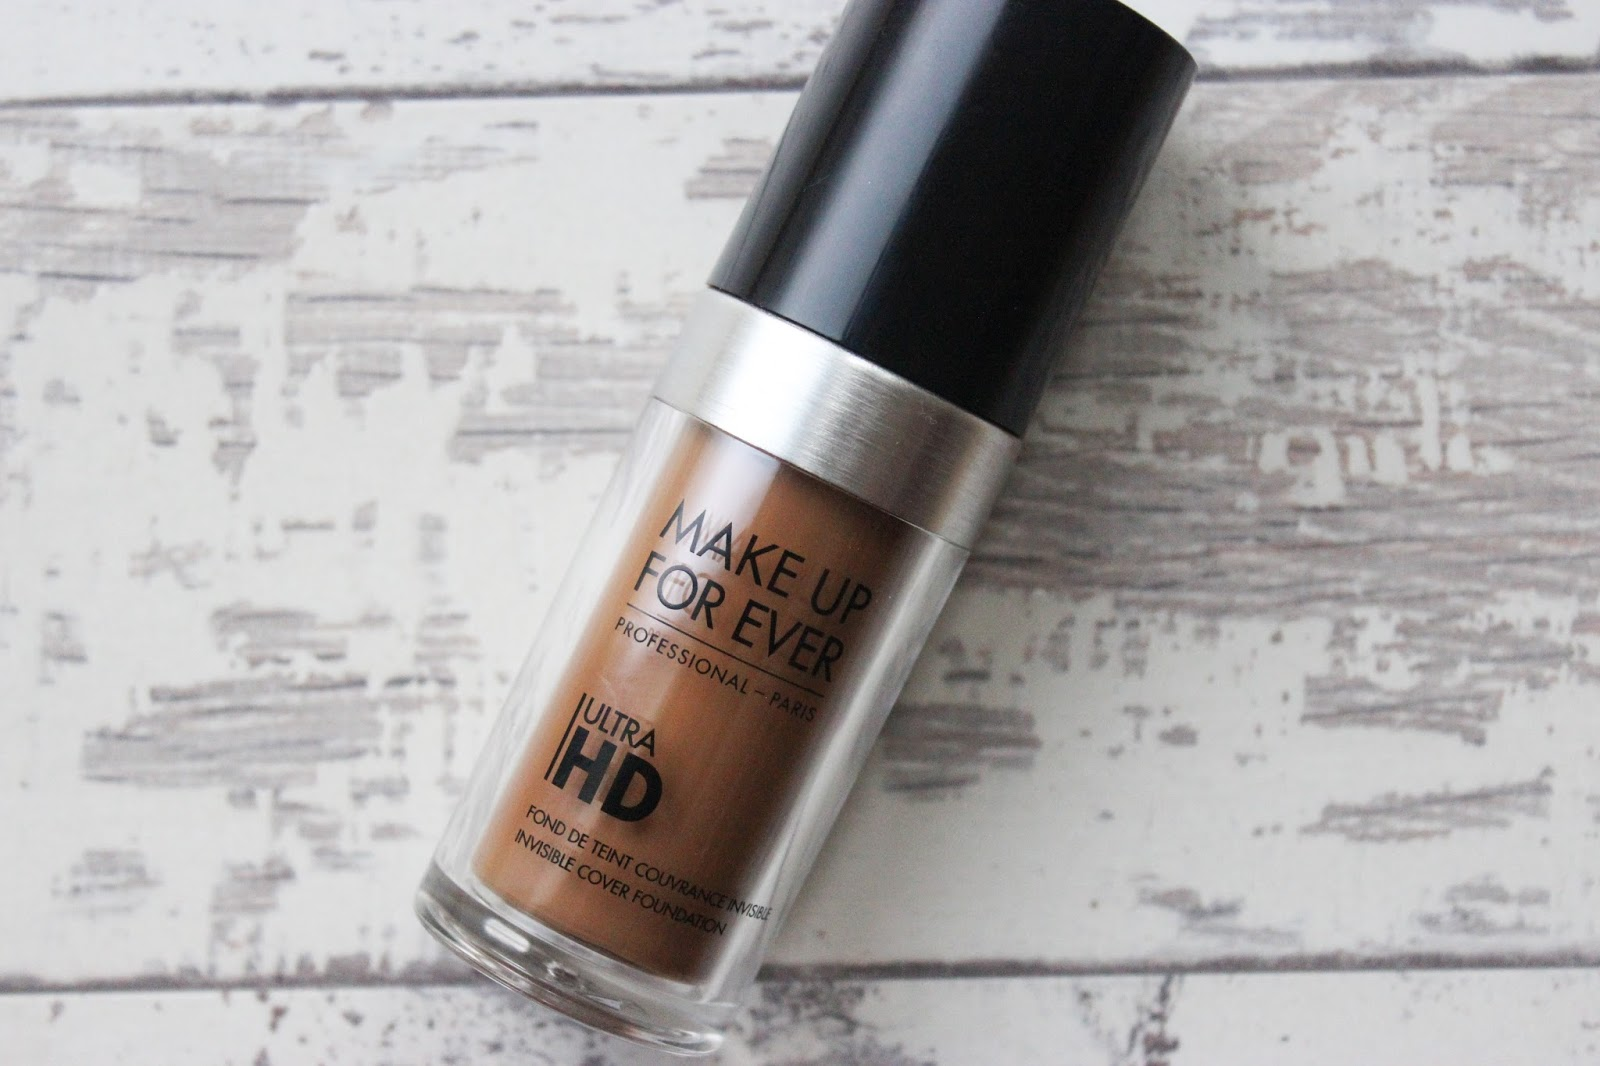 MAKE UP FOR EVER ULTRA HD FOUNDATION Y505 177 SWATCH DARK SKIN REVIEW BEAUTY BLOGGER NATALIE KAYO DISCOVERIESOFSELF BLOG